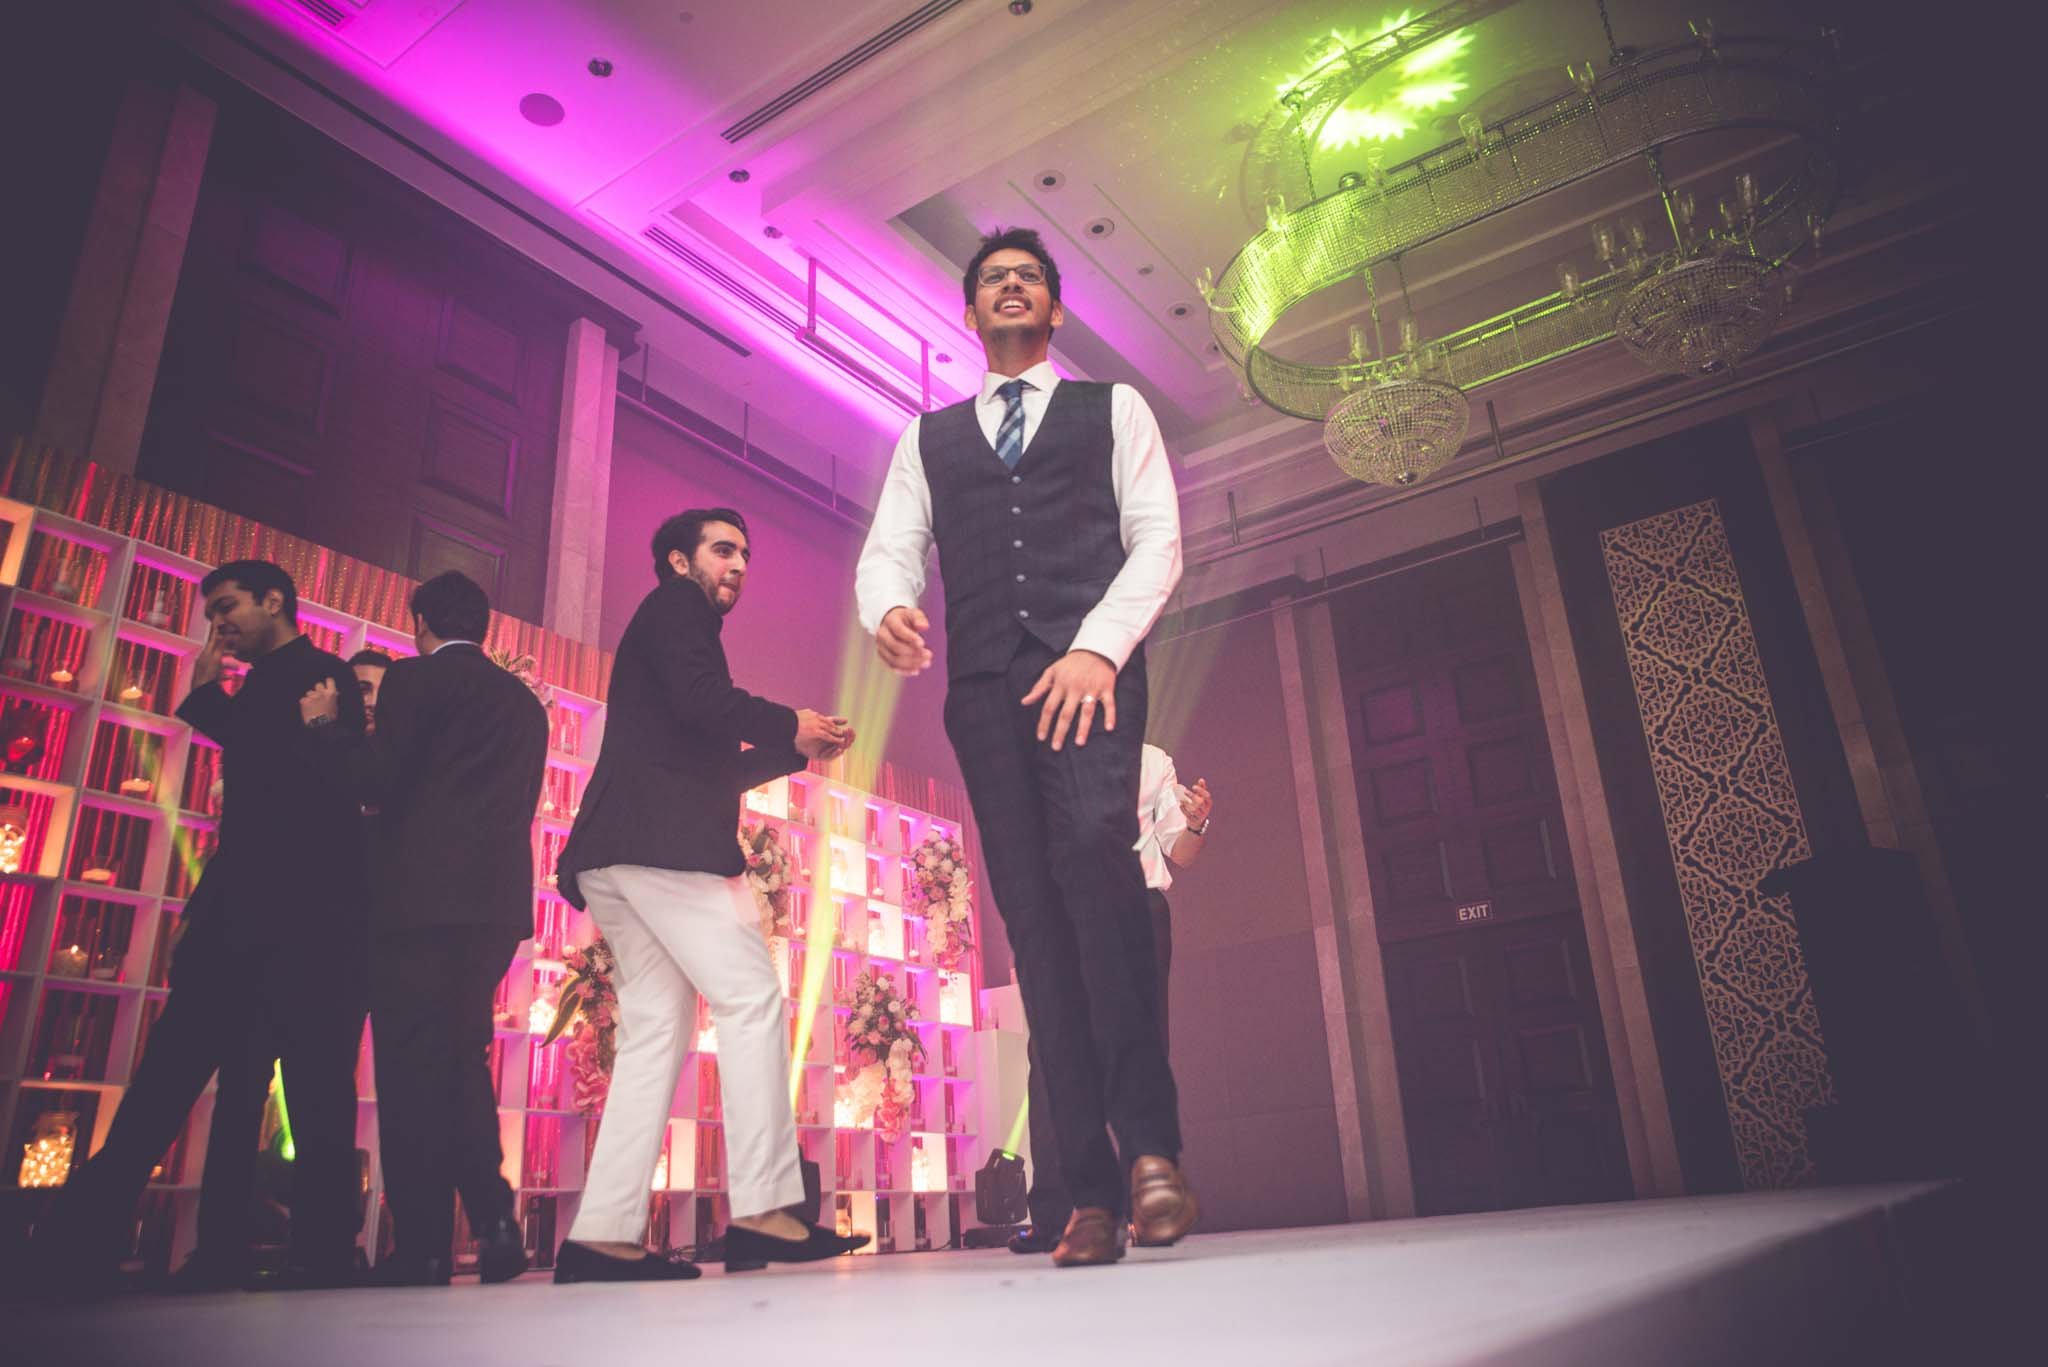 StRegis-Palladium-Mumbai-Candid-Wedding-Photography-81